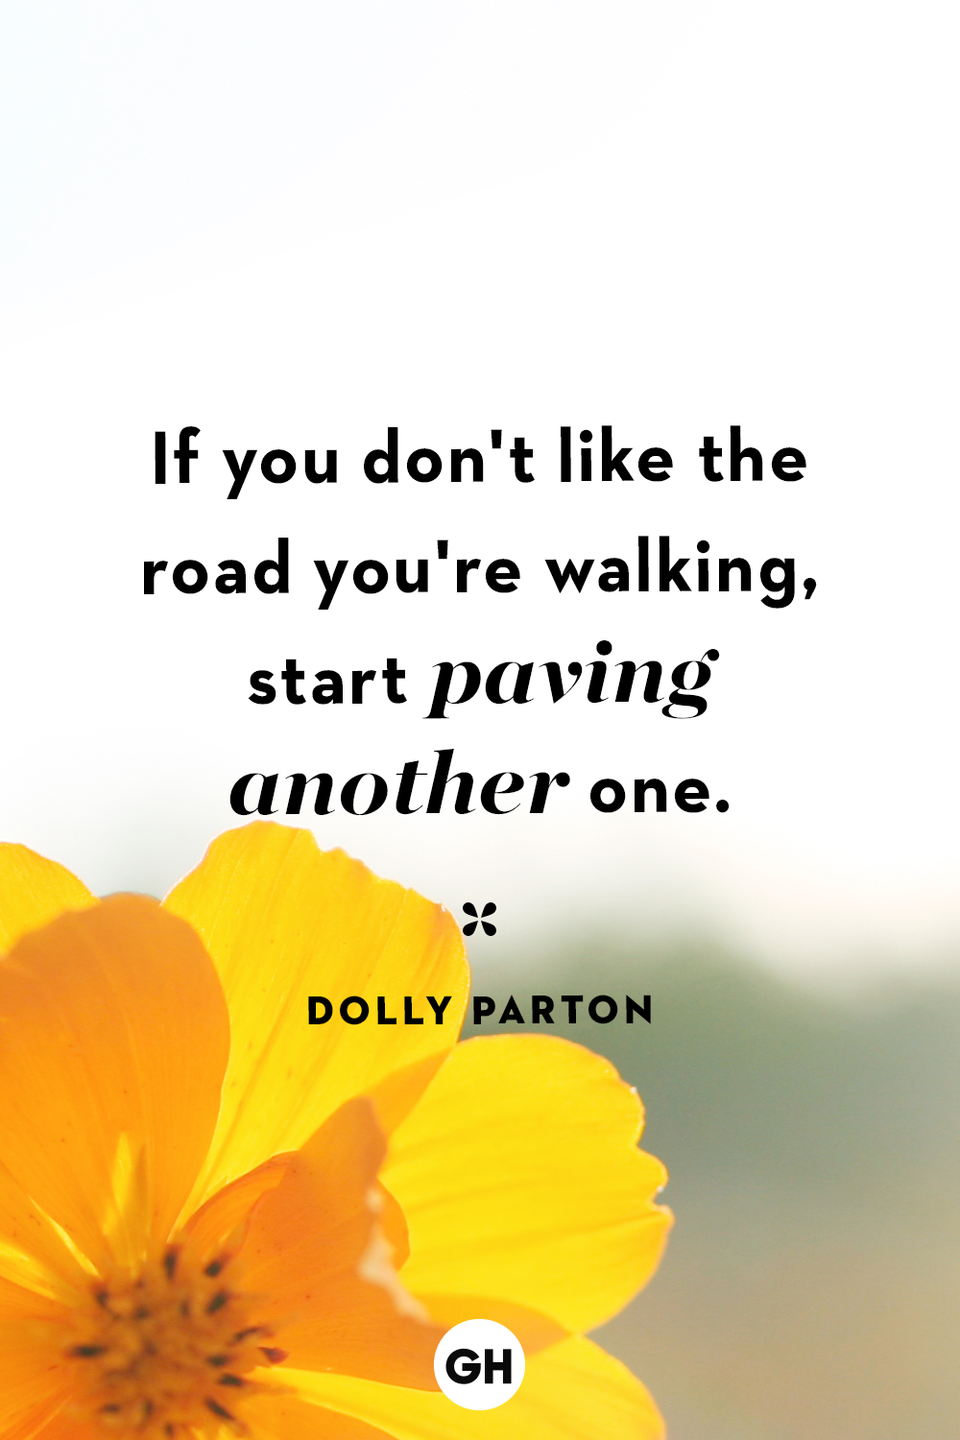 <p>If you don't like the road you're walking, start paving another one.</p>